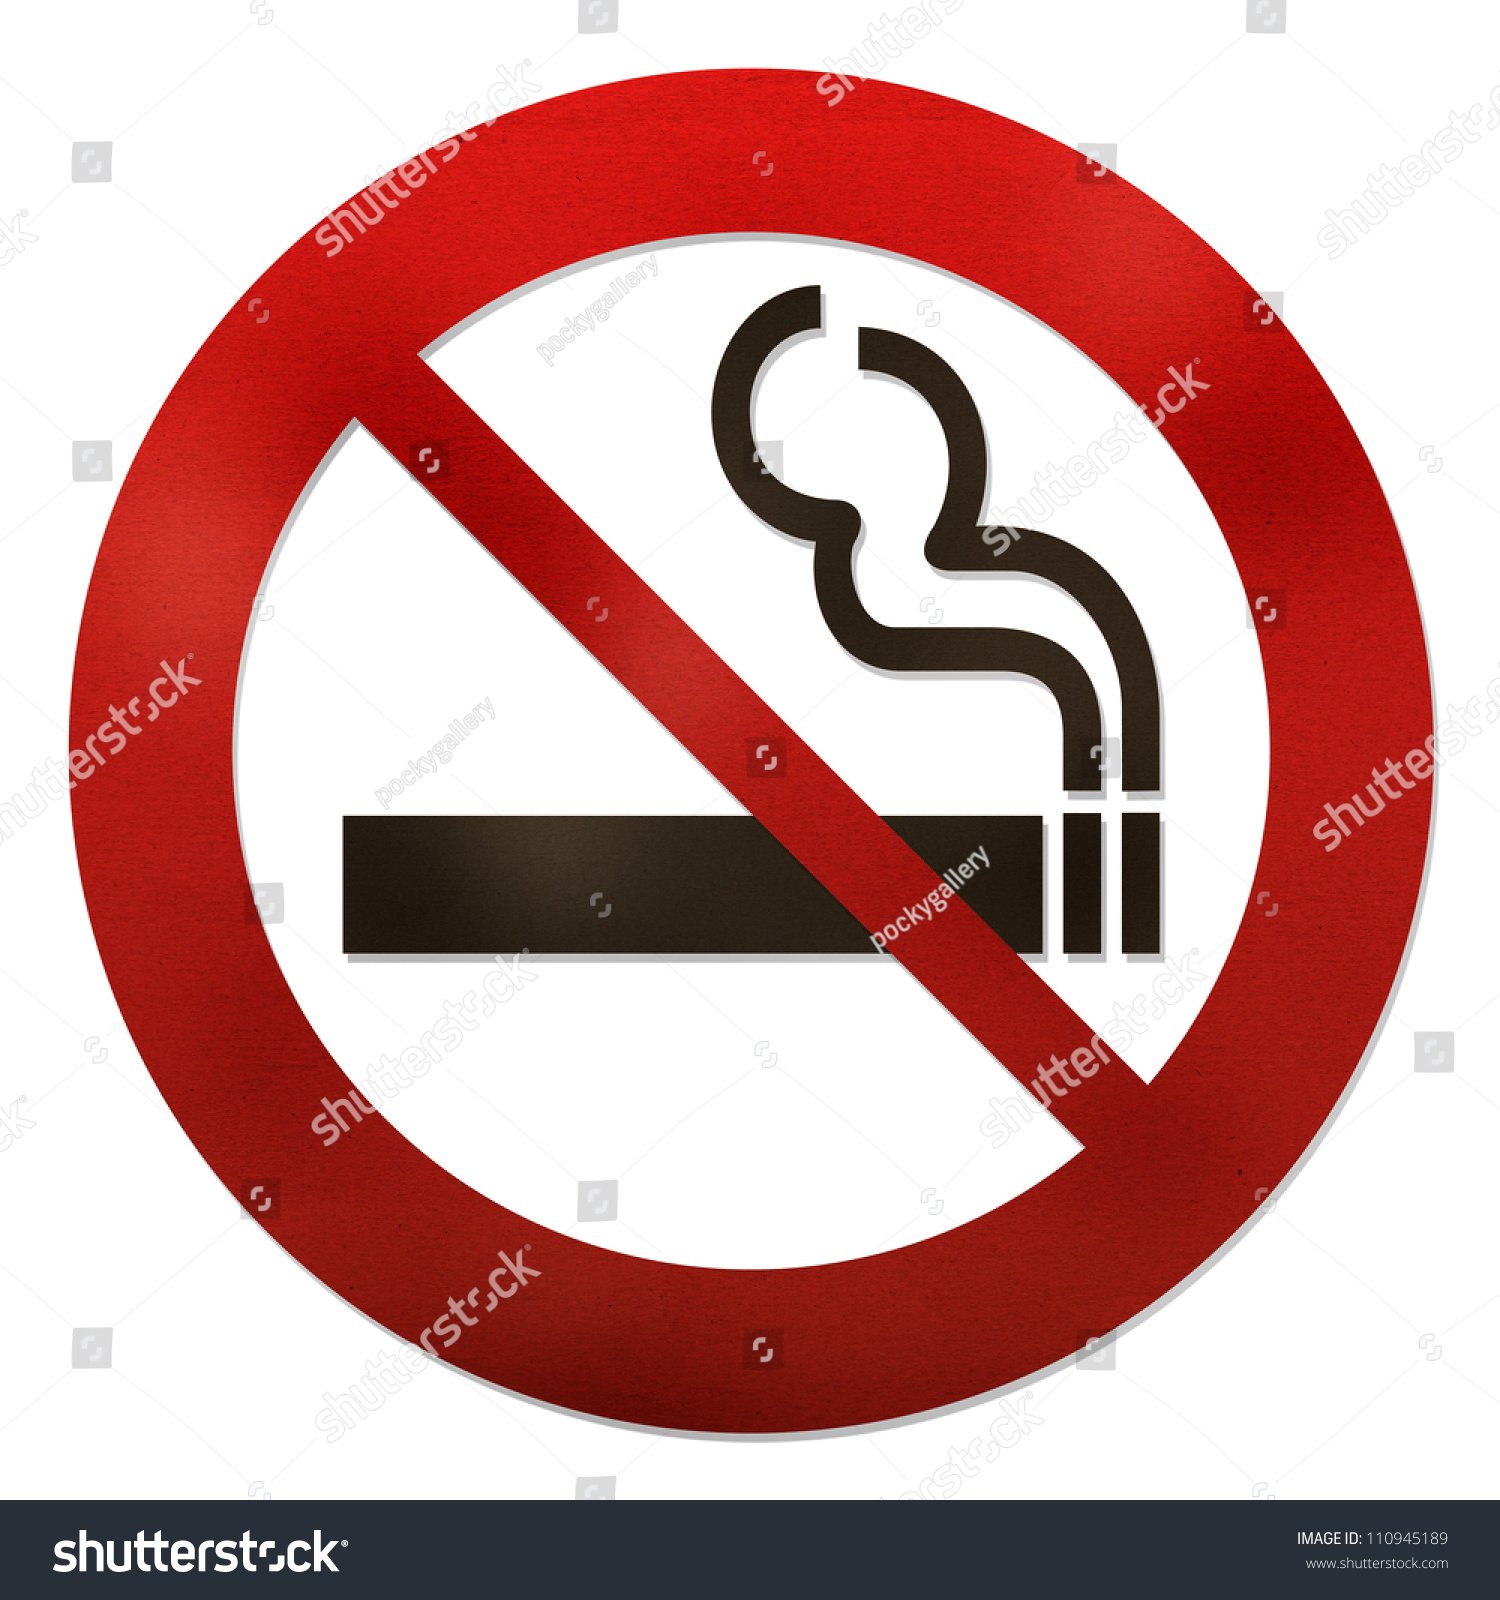 essays on smoking bans in public places One of the persuasive papers that you may face during your studies is smoking should be banned in public places essay if you really think this way and you are sure that smoking is something that should not be allowed in public places, it won't be very difficult to cope with this kind of writing assignment.